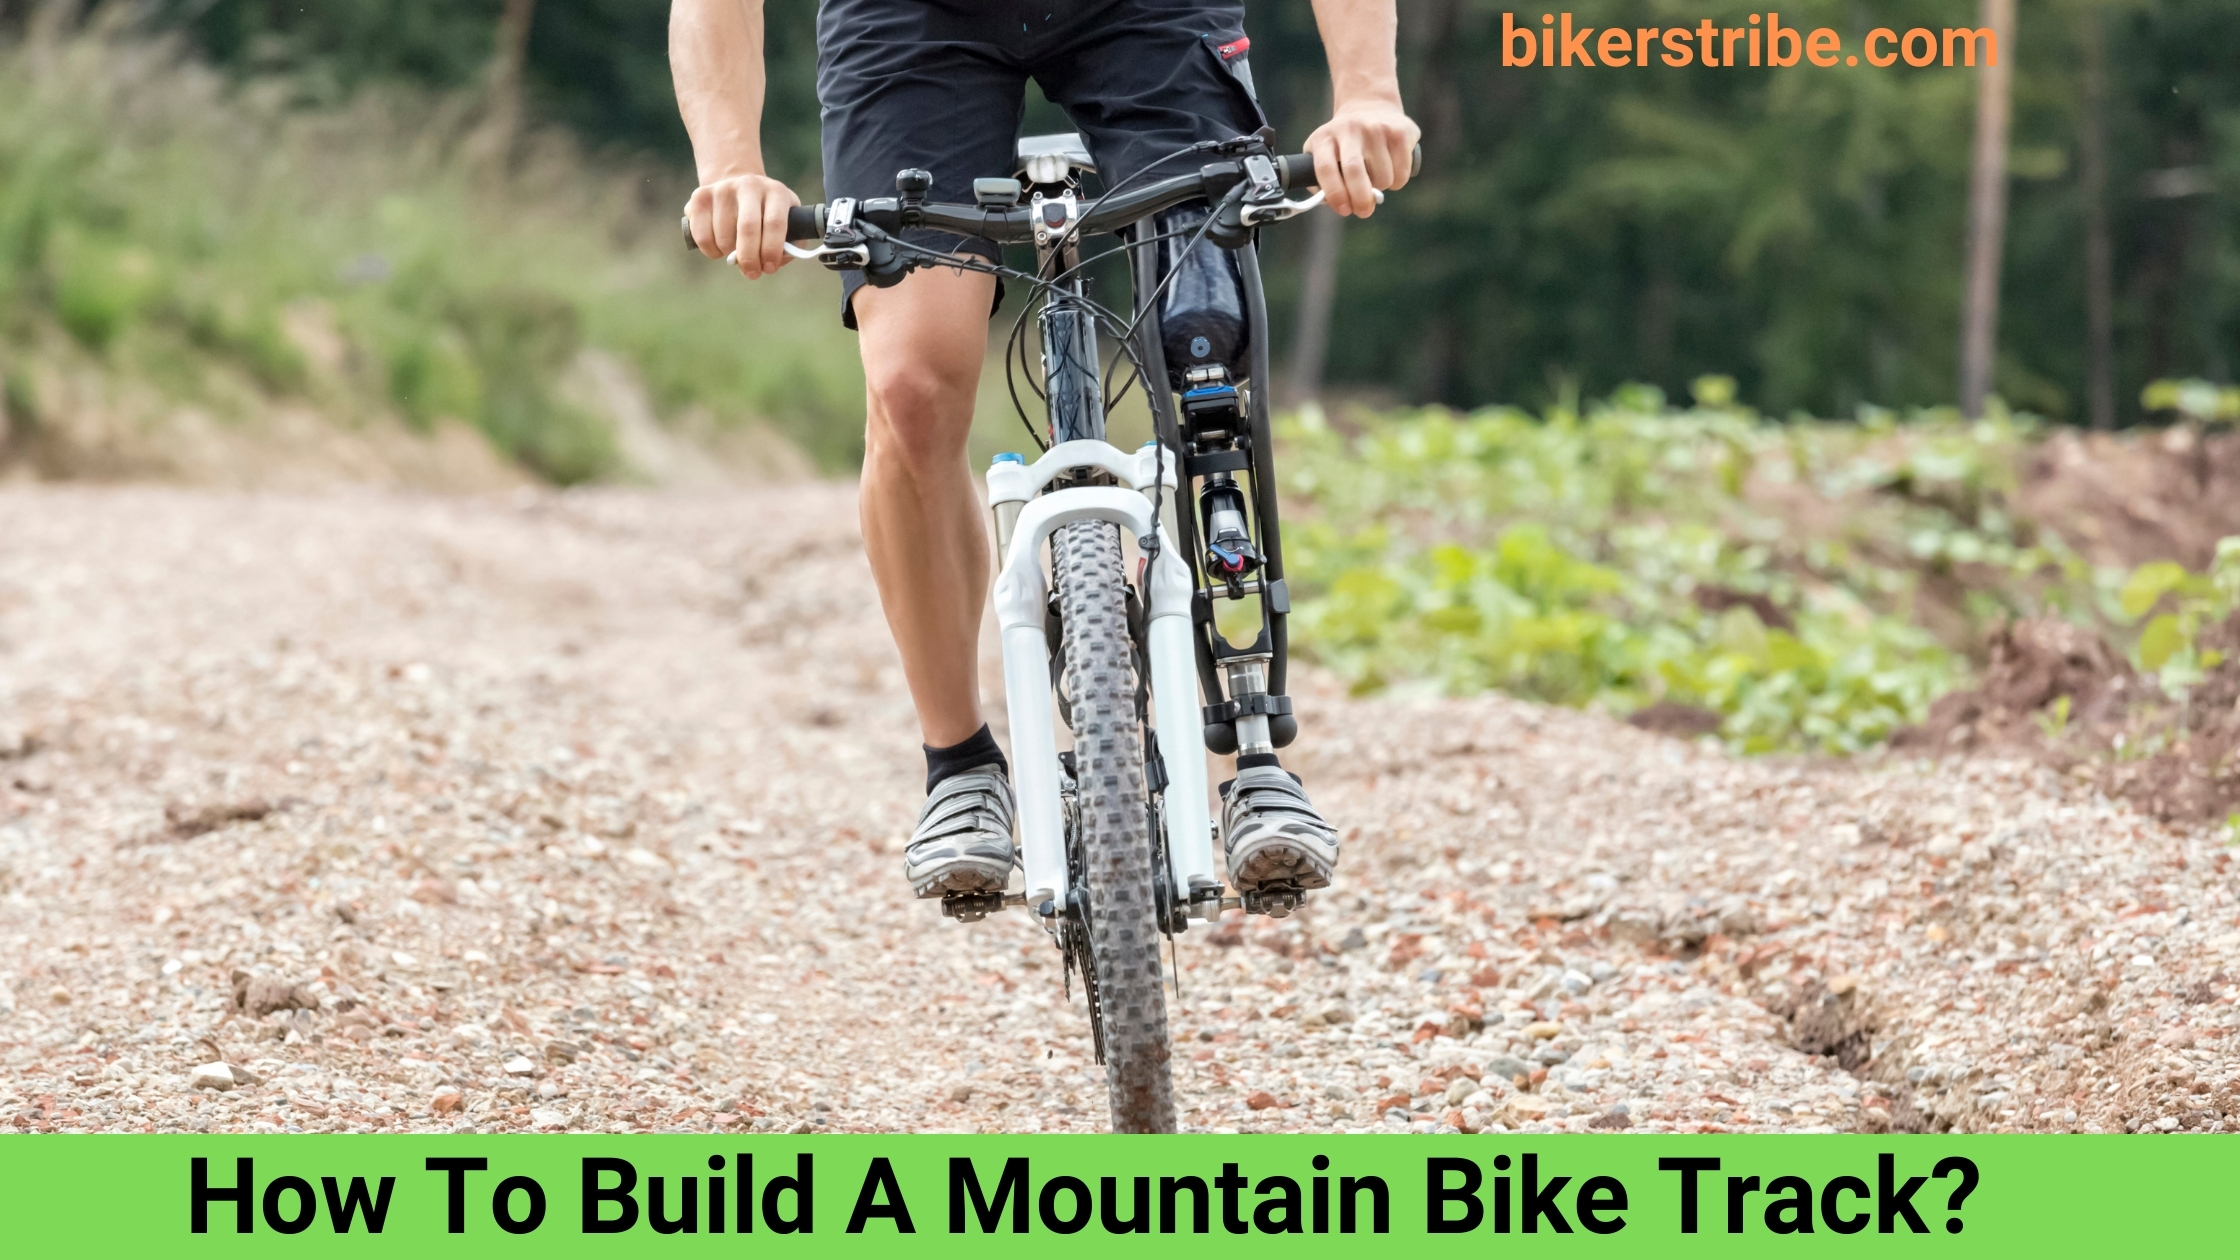 How To Build A Mountain Bike Track